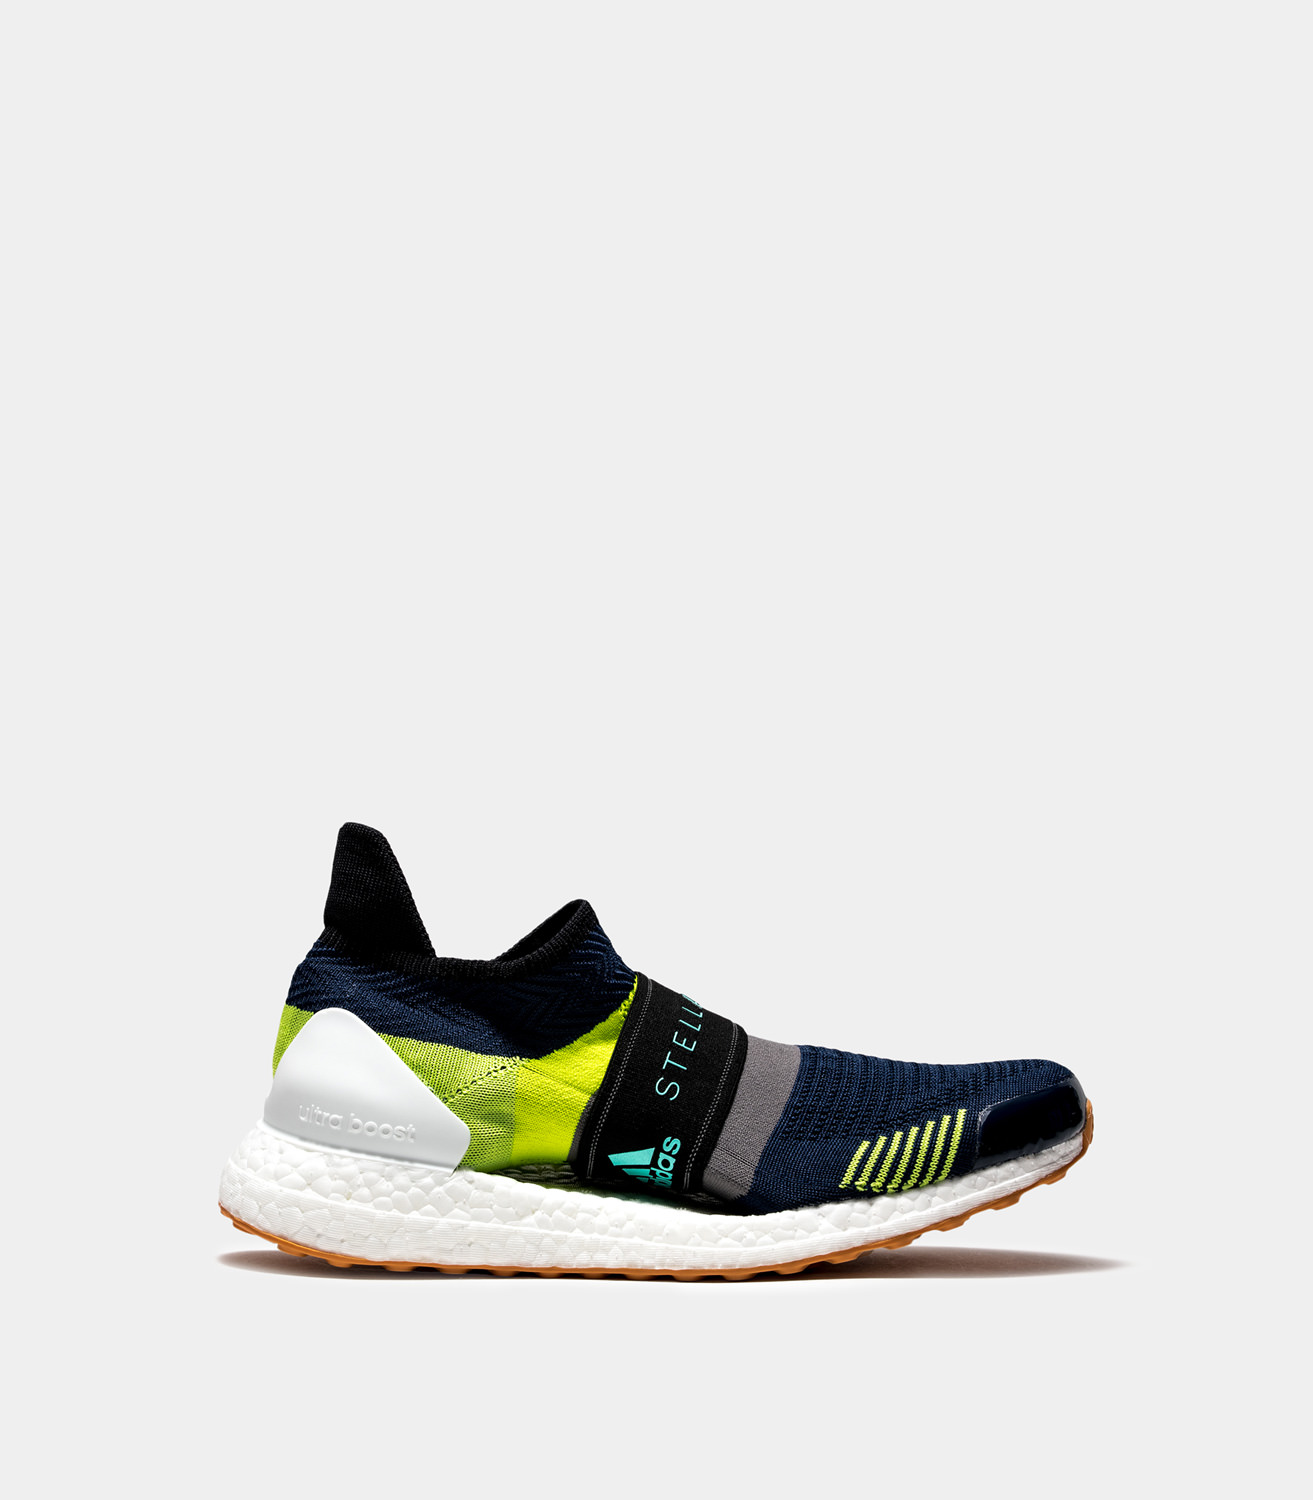 fa1ad104811b7 ADIDAS BY STELLA McCARTNEY  ULTRABOOST 3.D.S. SNEAKERS COLOR BLUE GREEN